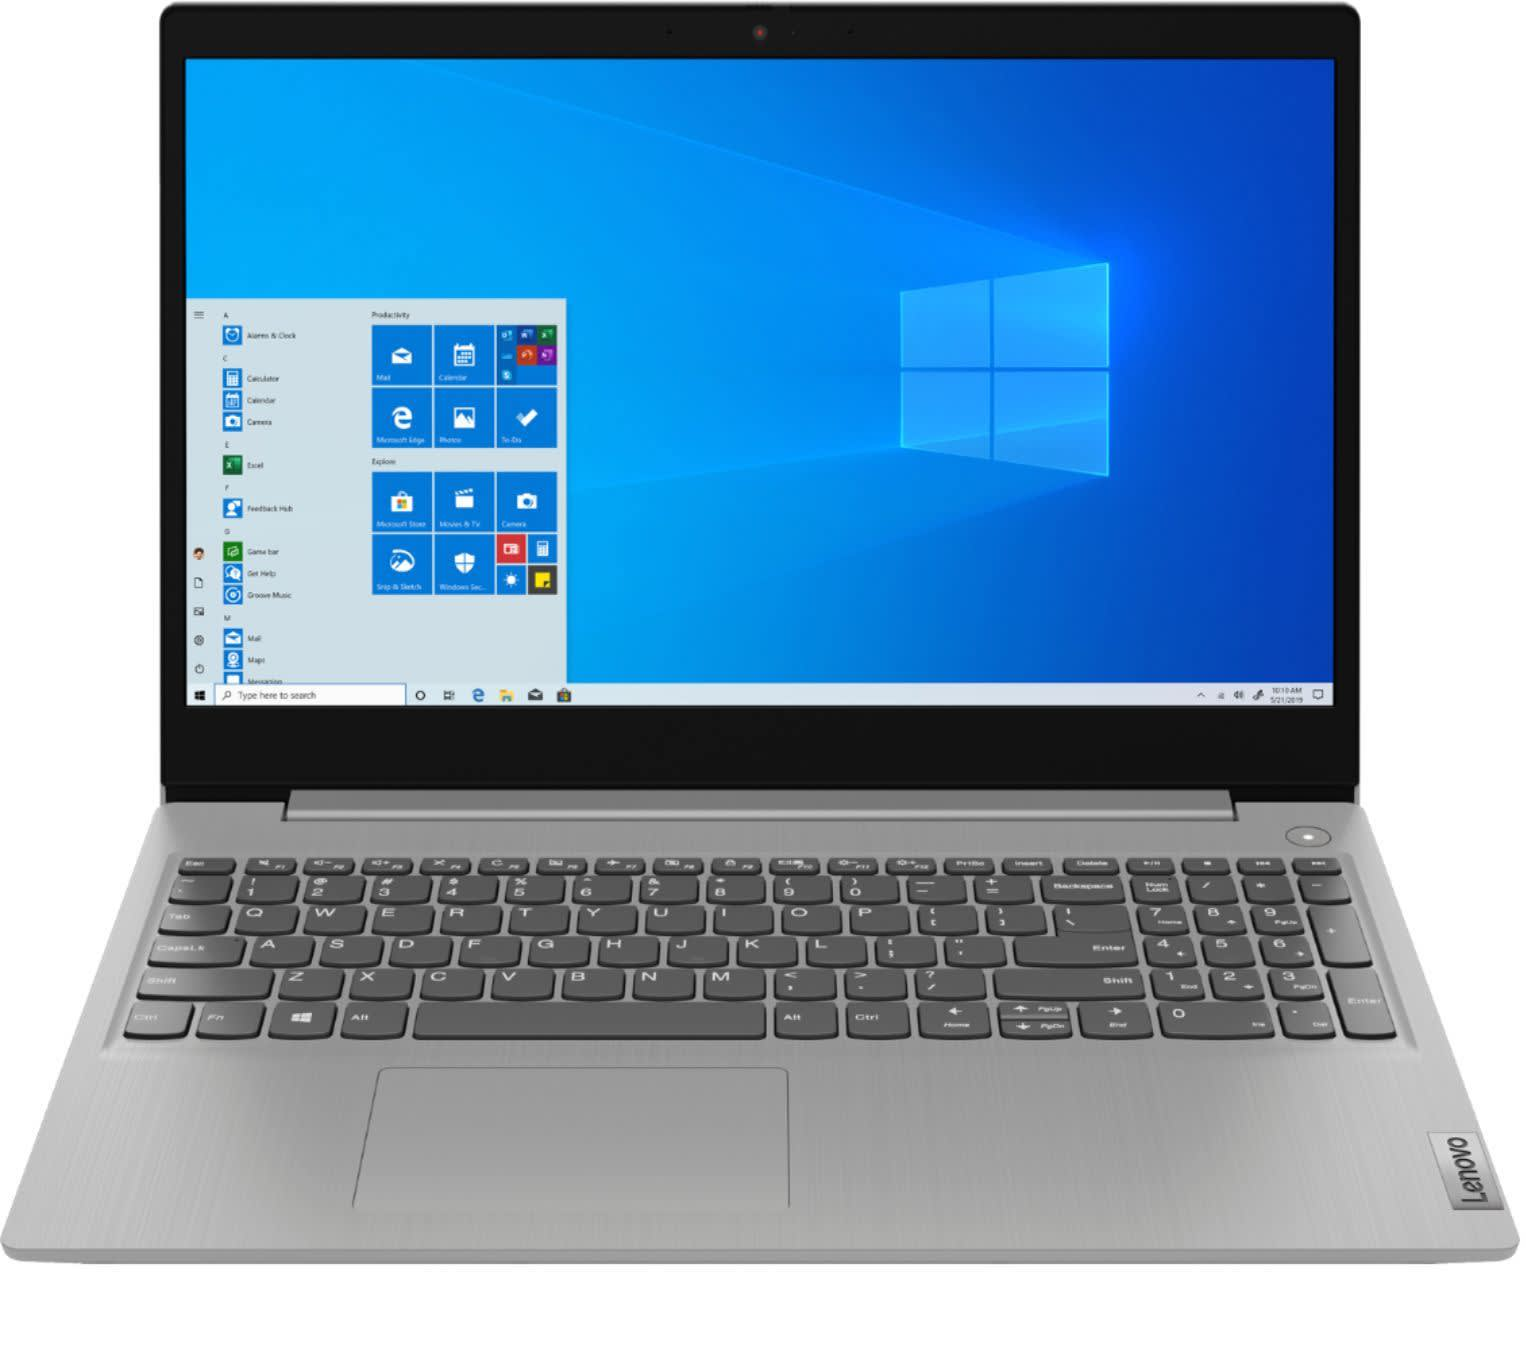 "Lenovo Ideapad 3 10th-Gen. Ice Lake 15.6"" Laptop"